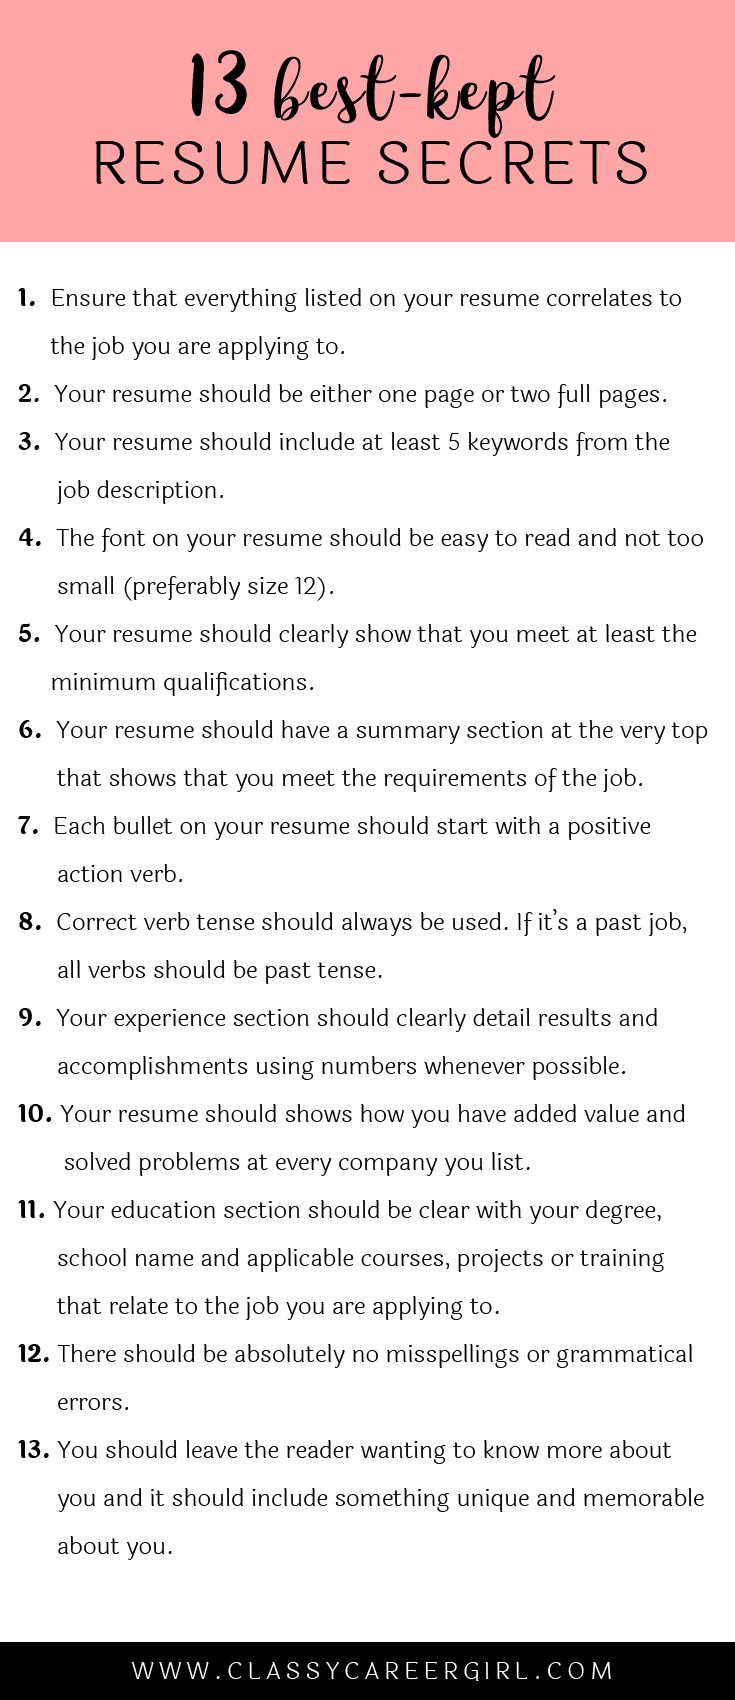 Opposenewapstandardsus  Marvellous  Ideas About Resume On Pinterest  Cv Format Resume Cv And  With Fair Some Hiring Managers Will Toss Your Resume Out If You Dont Know These  With Charming Examples Of Simple Resumes Also Training Manager Resume In Addition Dental Assistant Resume Samples And Resume Maker App As Well As Interests Resume Additionally Filling Out A Resume From Pinterestcom With Opposenewapstandardsus  Fair  Ideas About Resume On Pinterest  Cv Format Resume Cv And  With Charming Some Hiring Managers Will Toss Your Resume Out If You Dont Know These  And Marvellous Examples Of Simple Resumes Also Training Manager Resume In Addition Dental Assistant Resume Samples From Pinterestcom